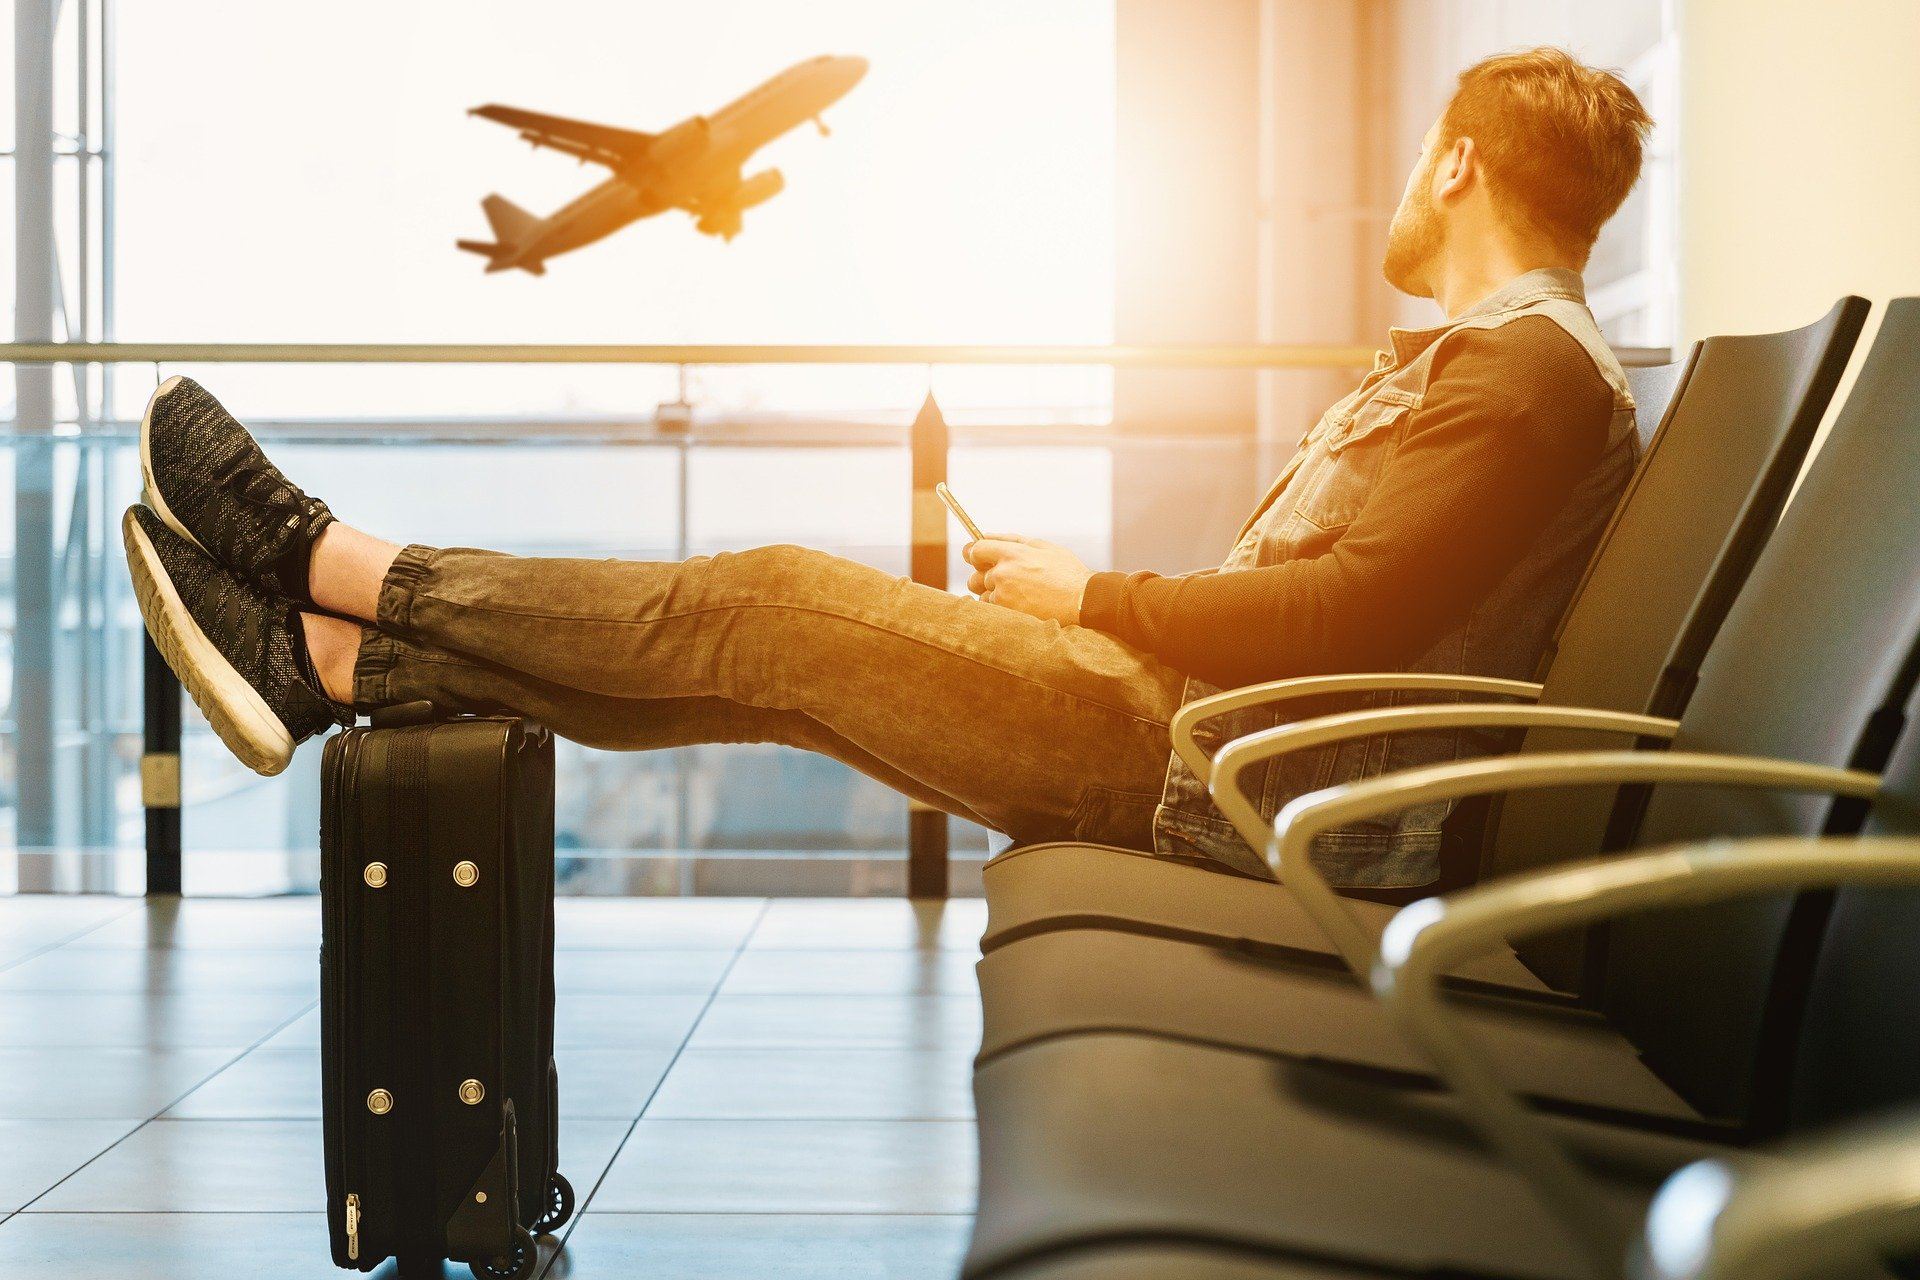 Travel Hacking for Dummies - Sitting at Airport